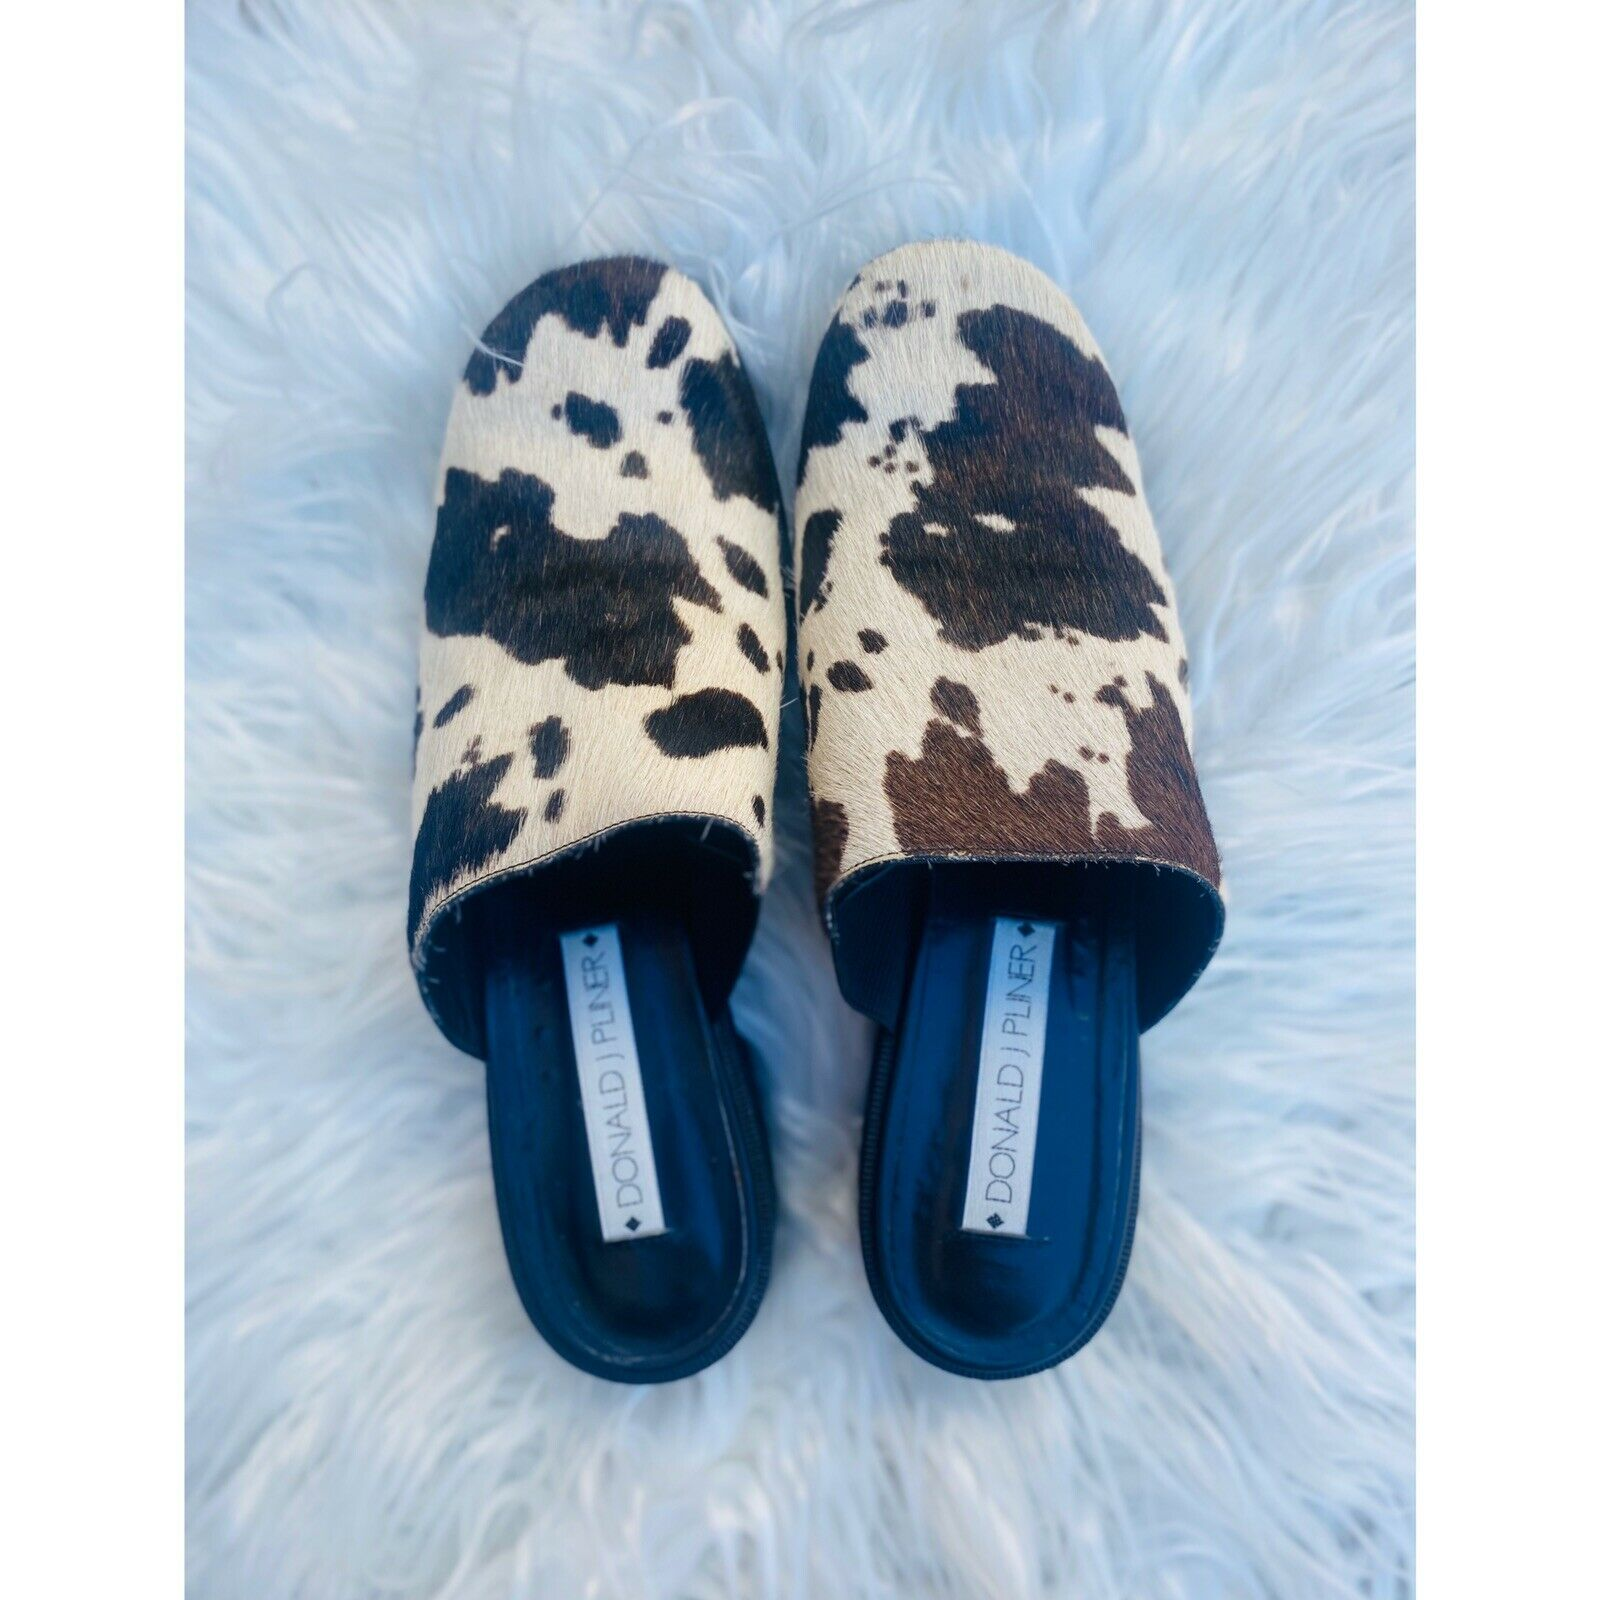 Donald Pliner 90s inspired cow hair mules - image 2